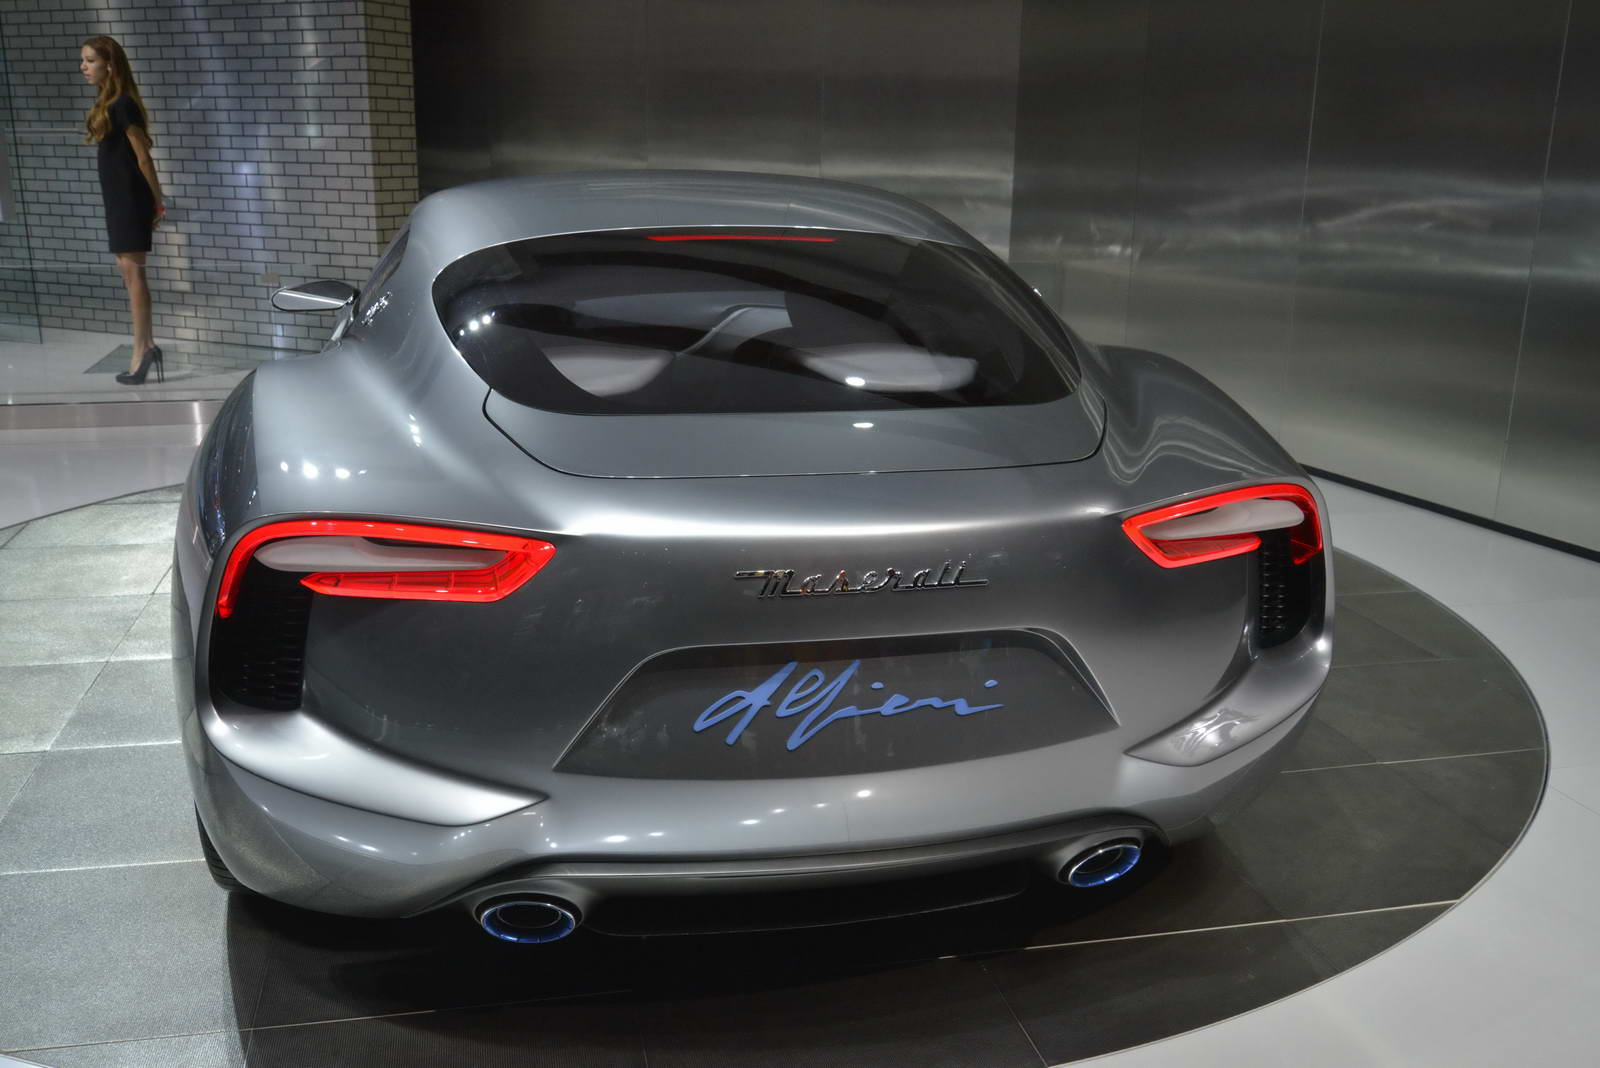 Maserati Alfieri Coming To Wow Sports Car Lovers | Carscoops